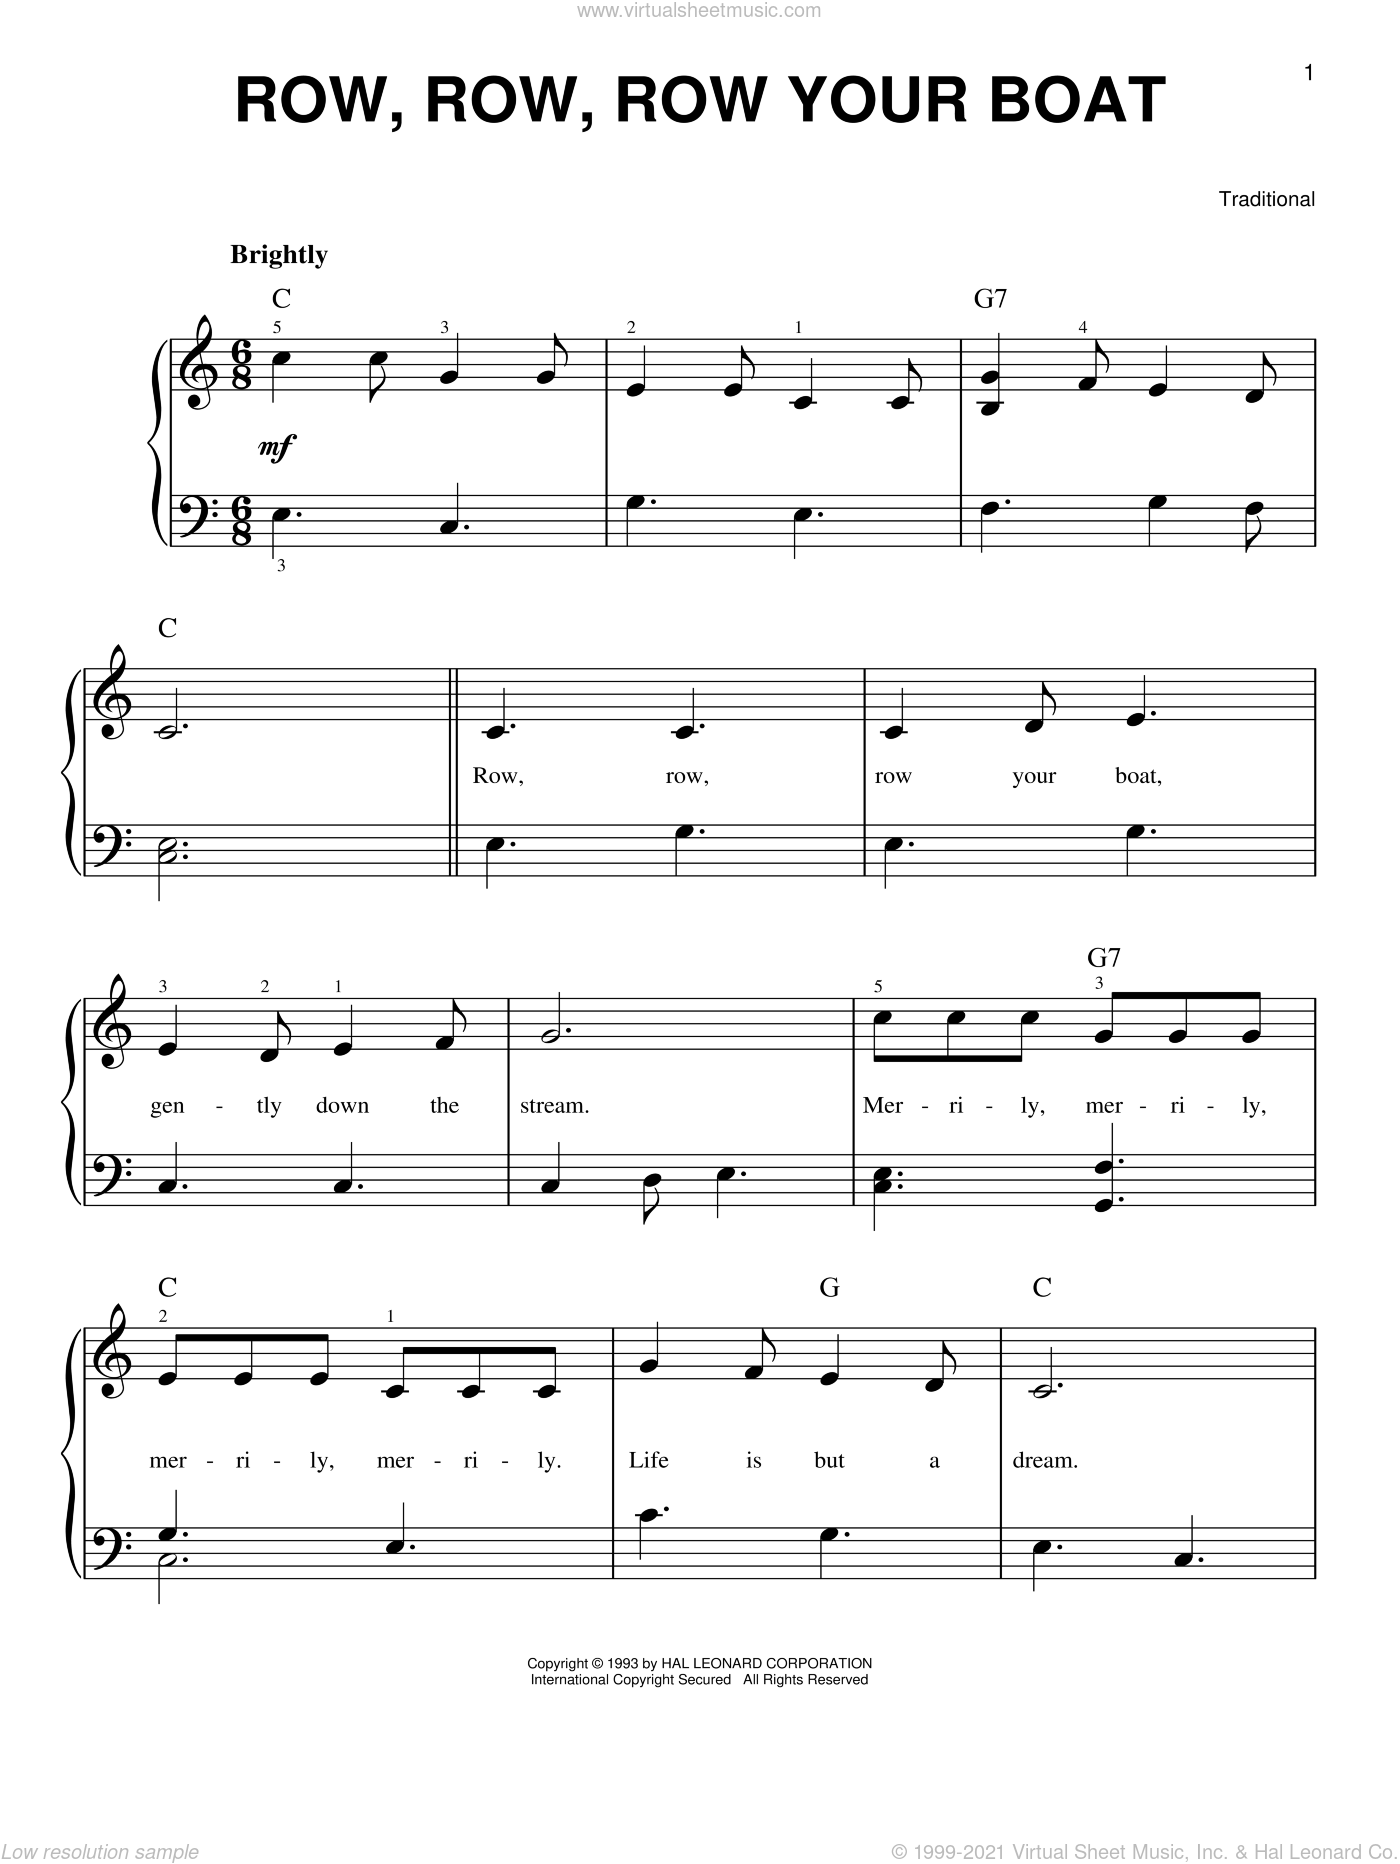 Row, Row, Row Your Boat sheet music for piano solo